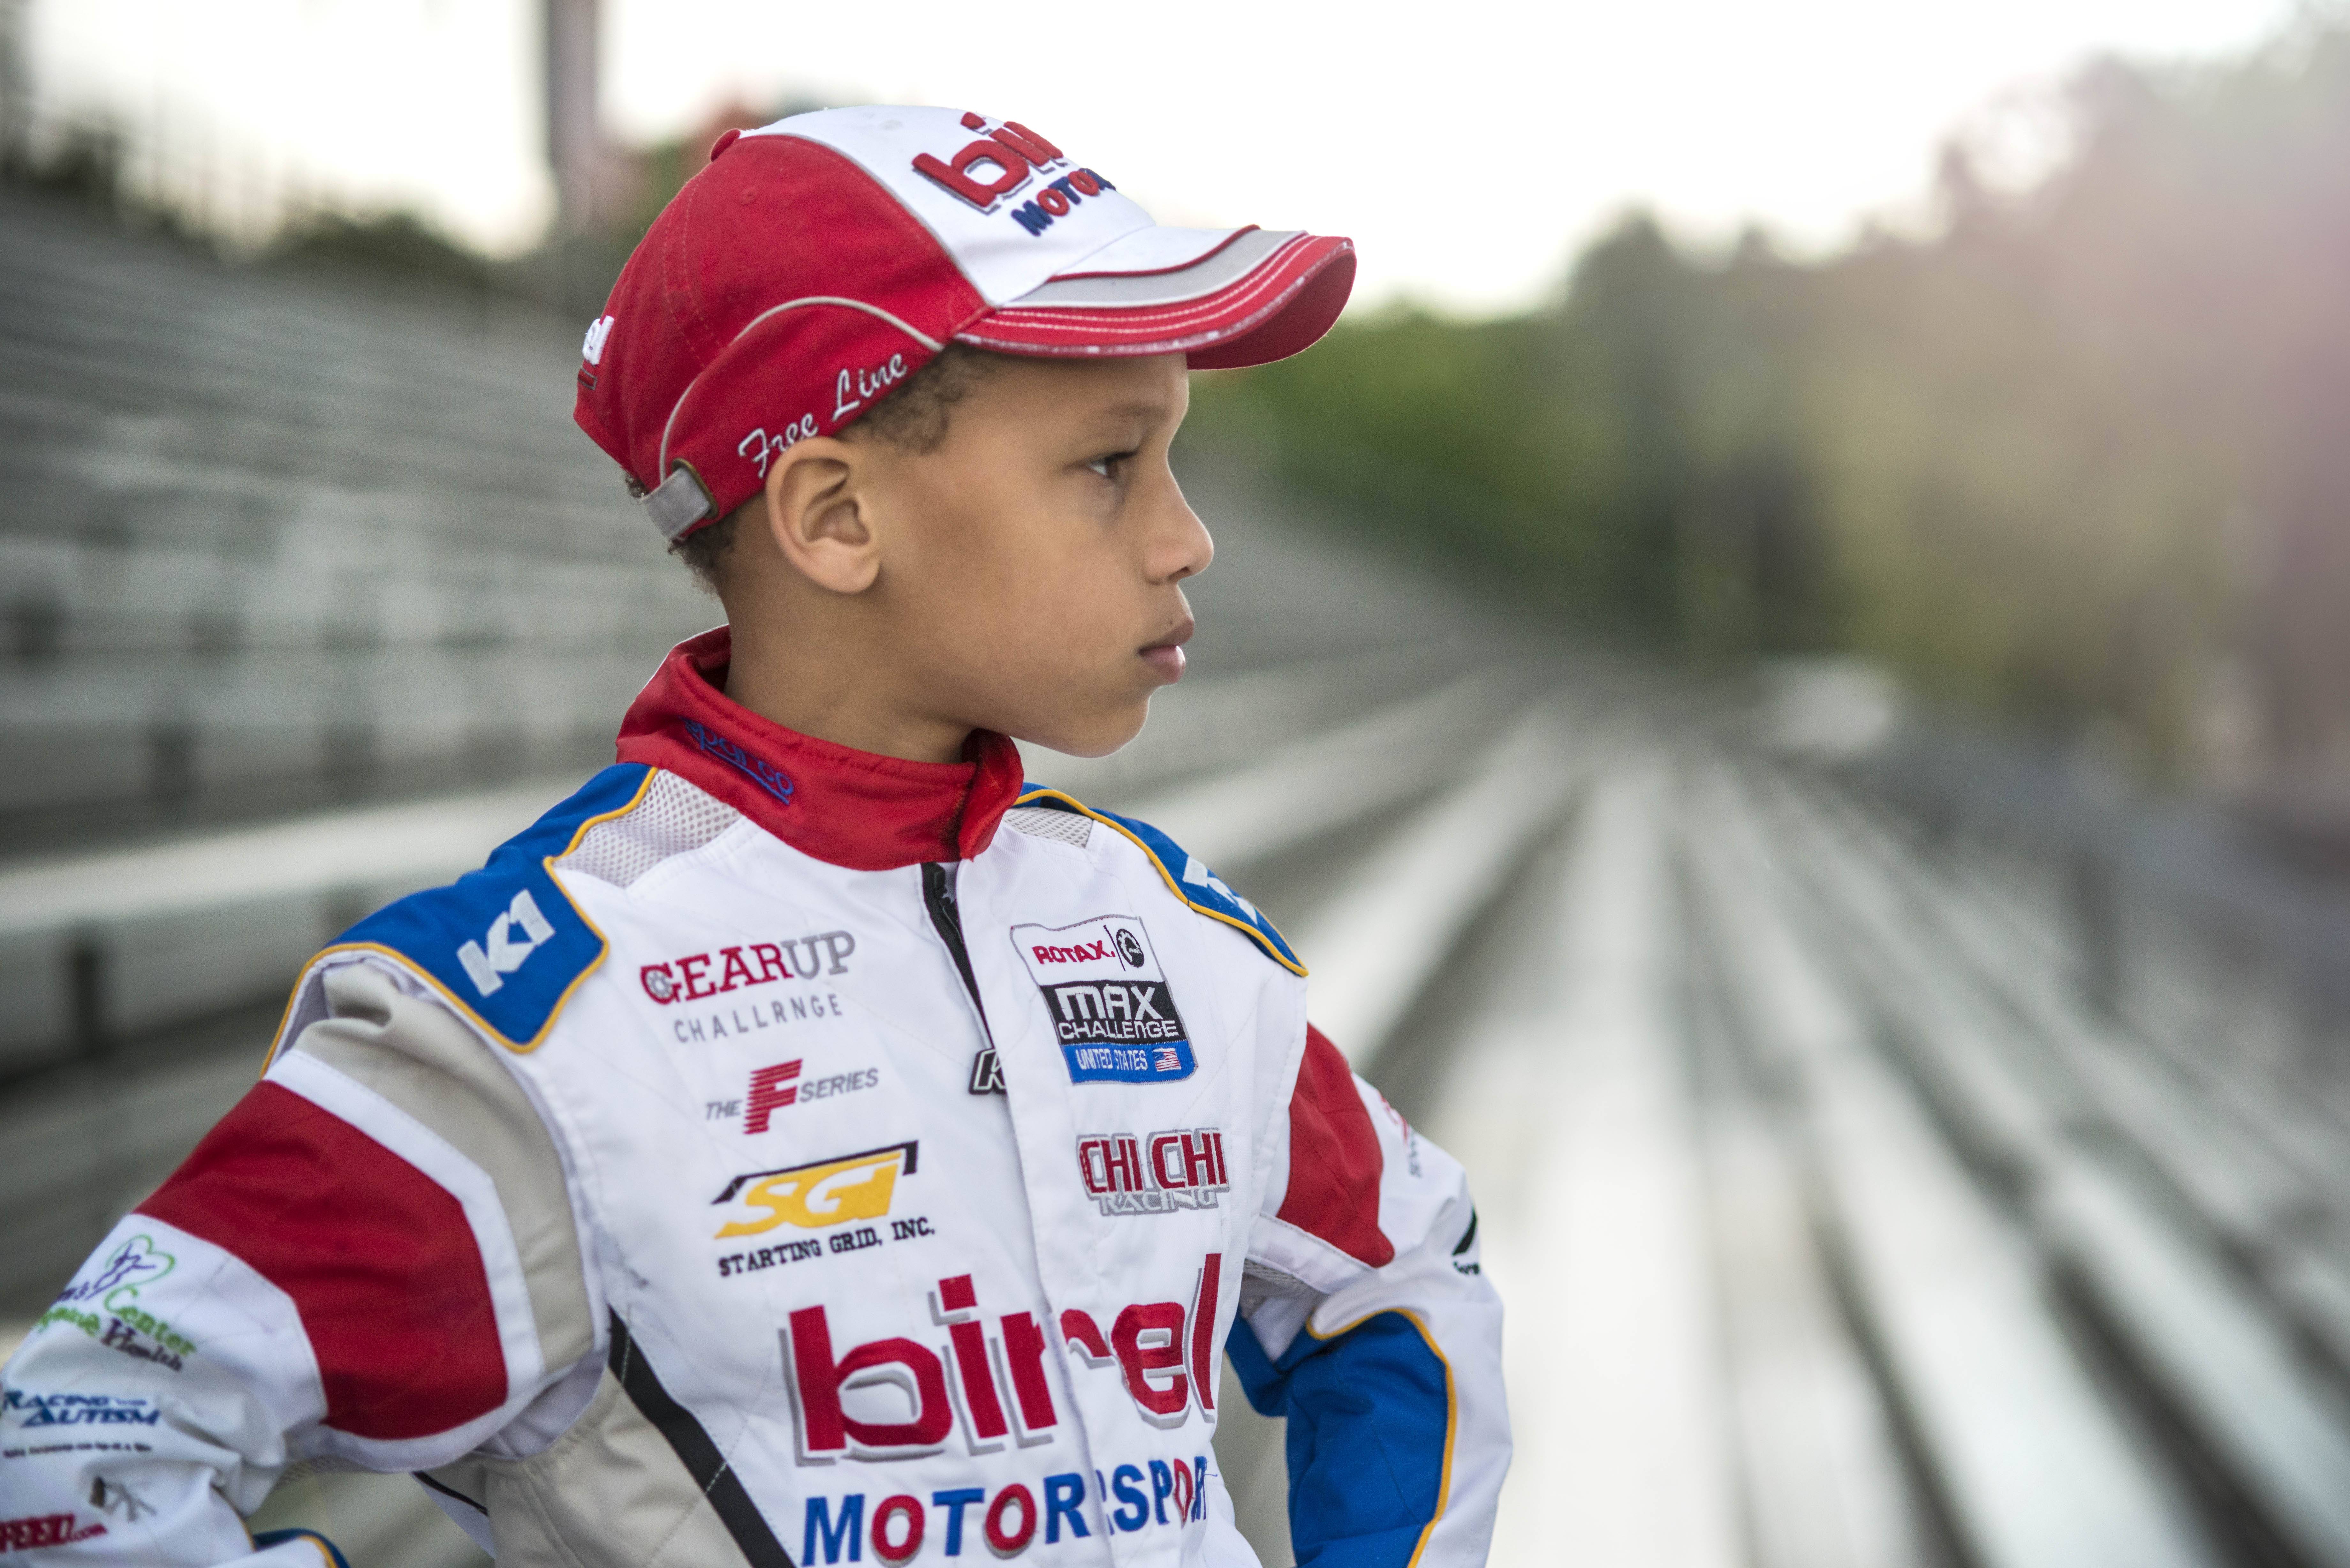 KidzSpeed portrait #2 - 2015